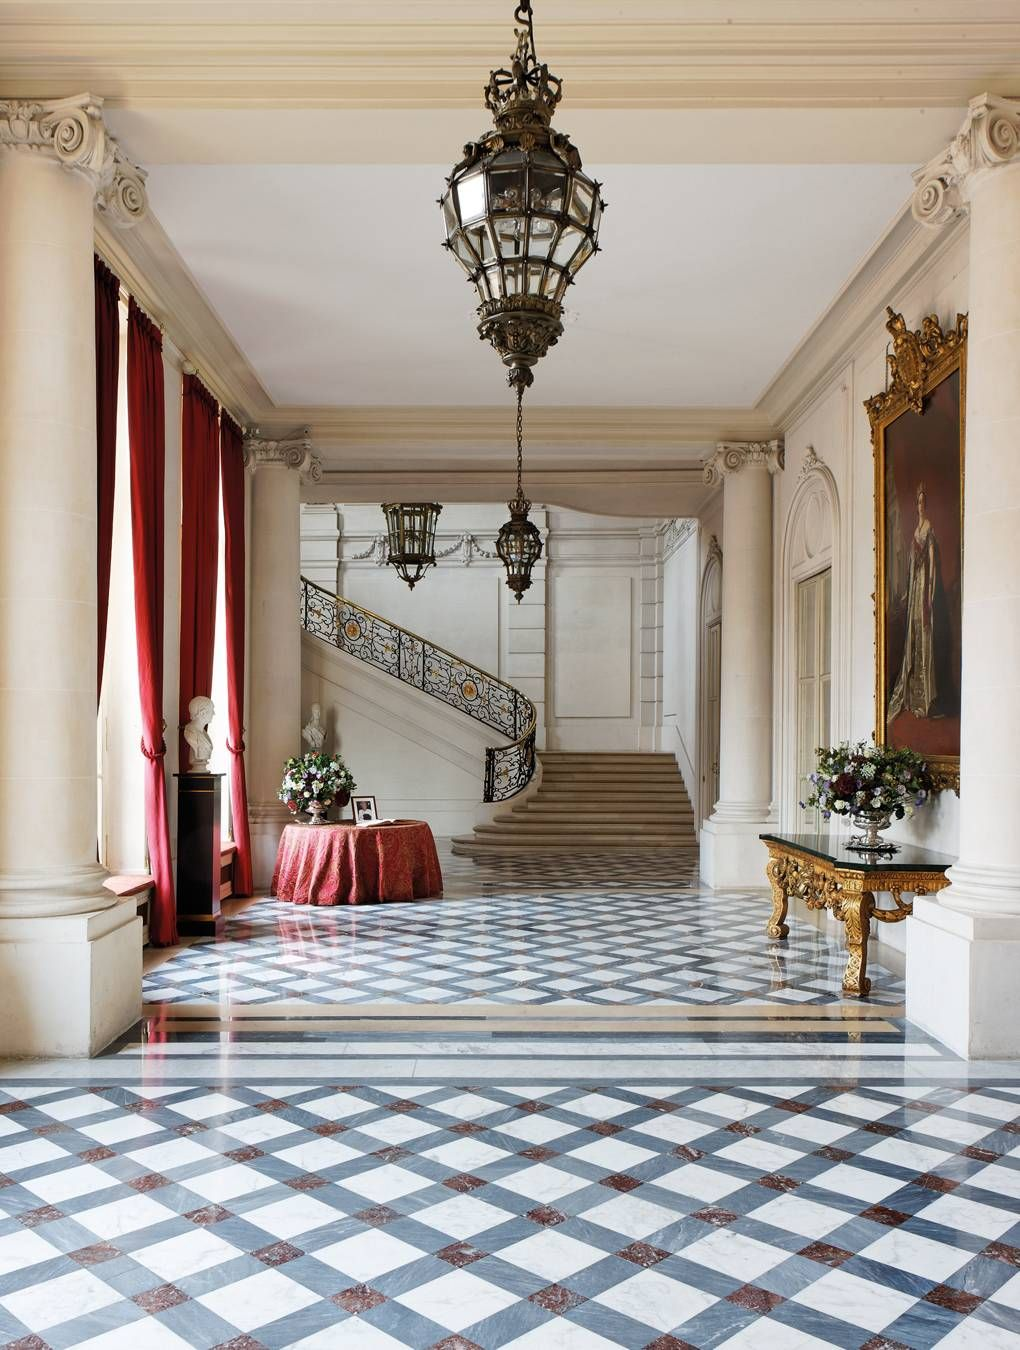 A rare and fascinating look inside Paris' ambassadorial residences